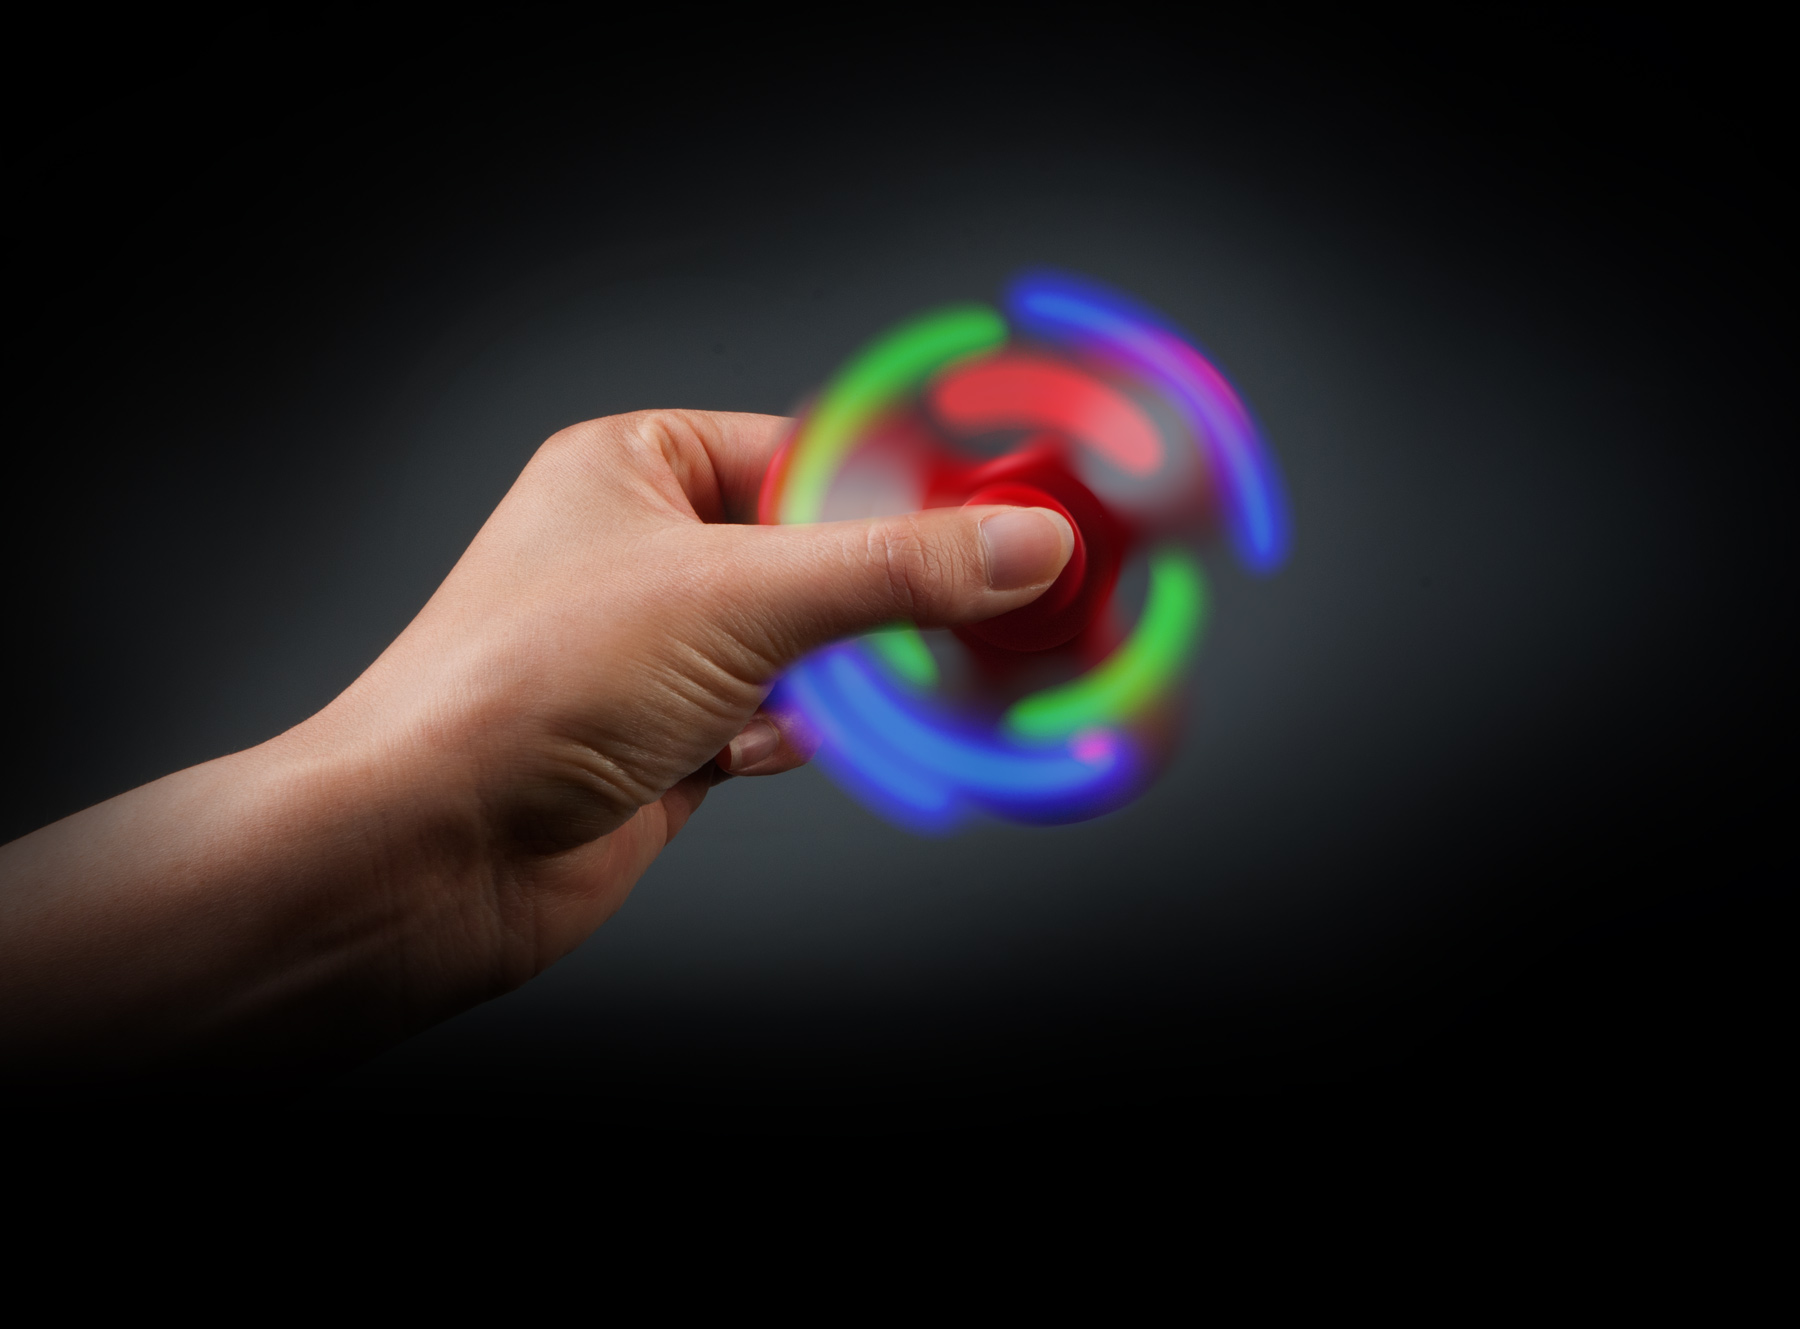 Photo used on fidget spinner display. A double exposure technique was used to capture the lighting effects. © E-filliate Inc.